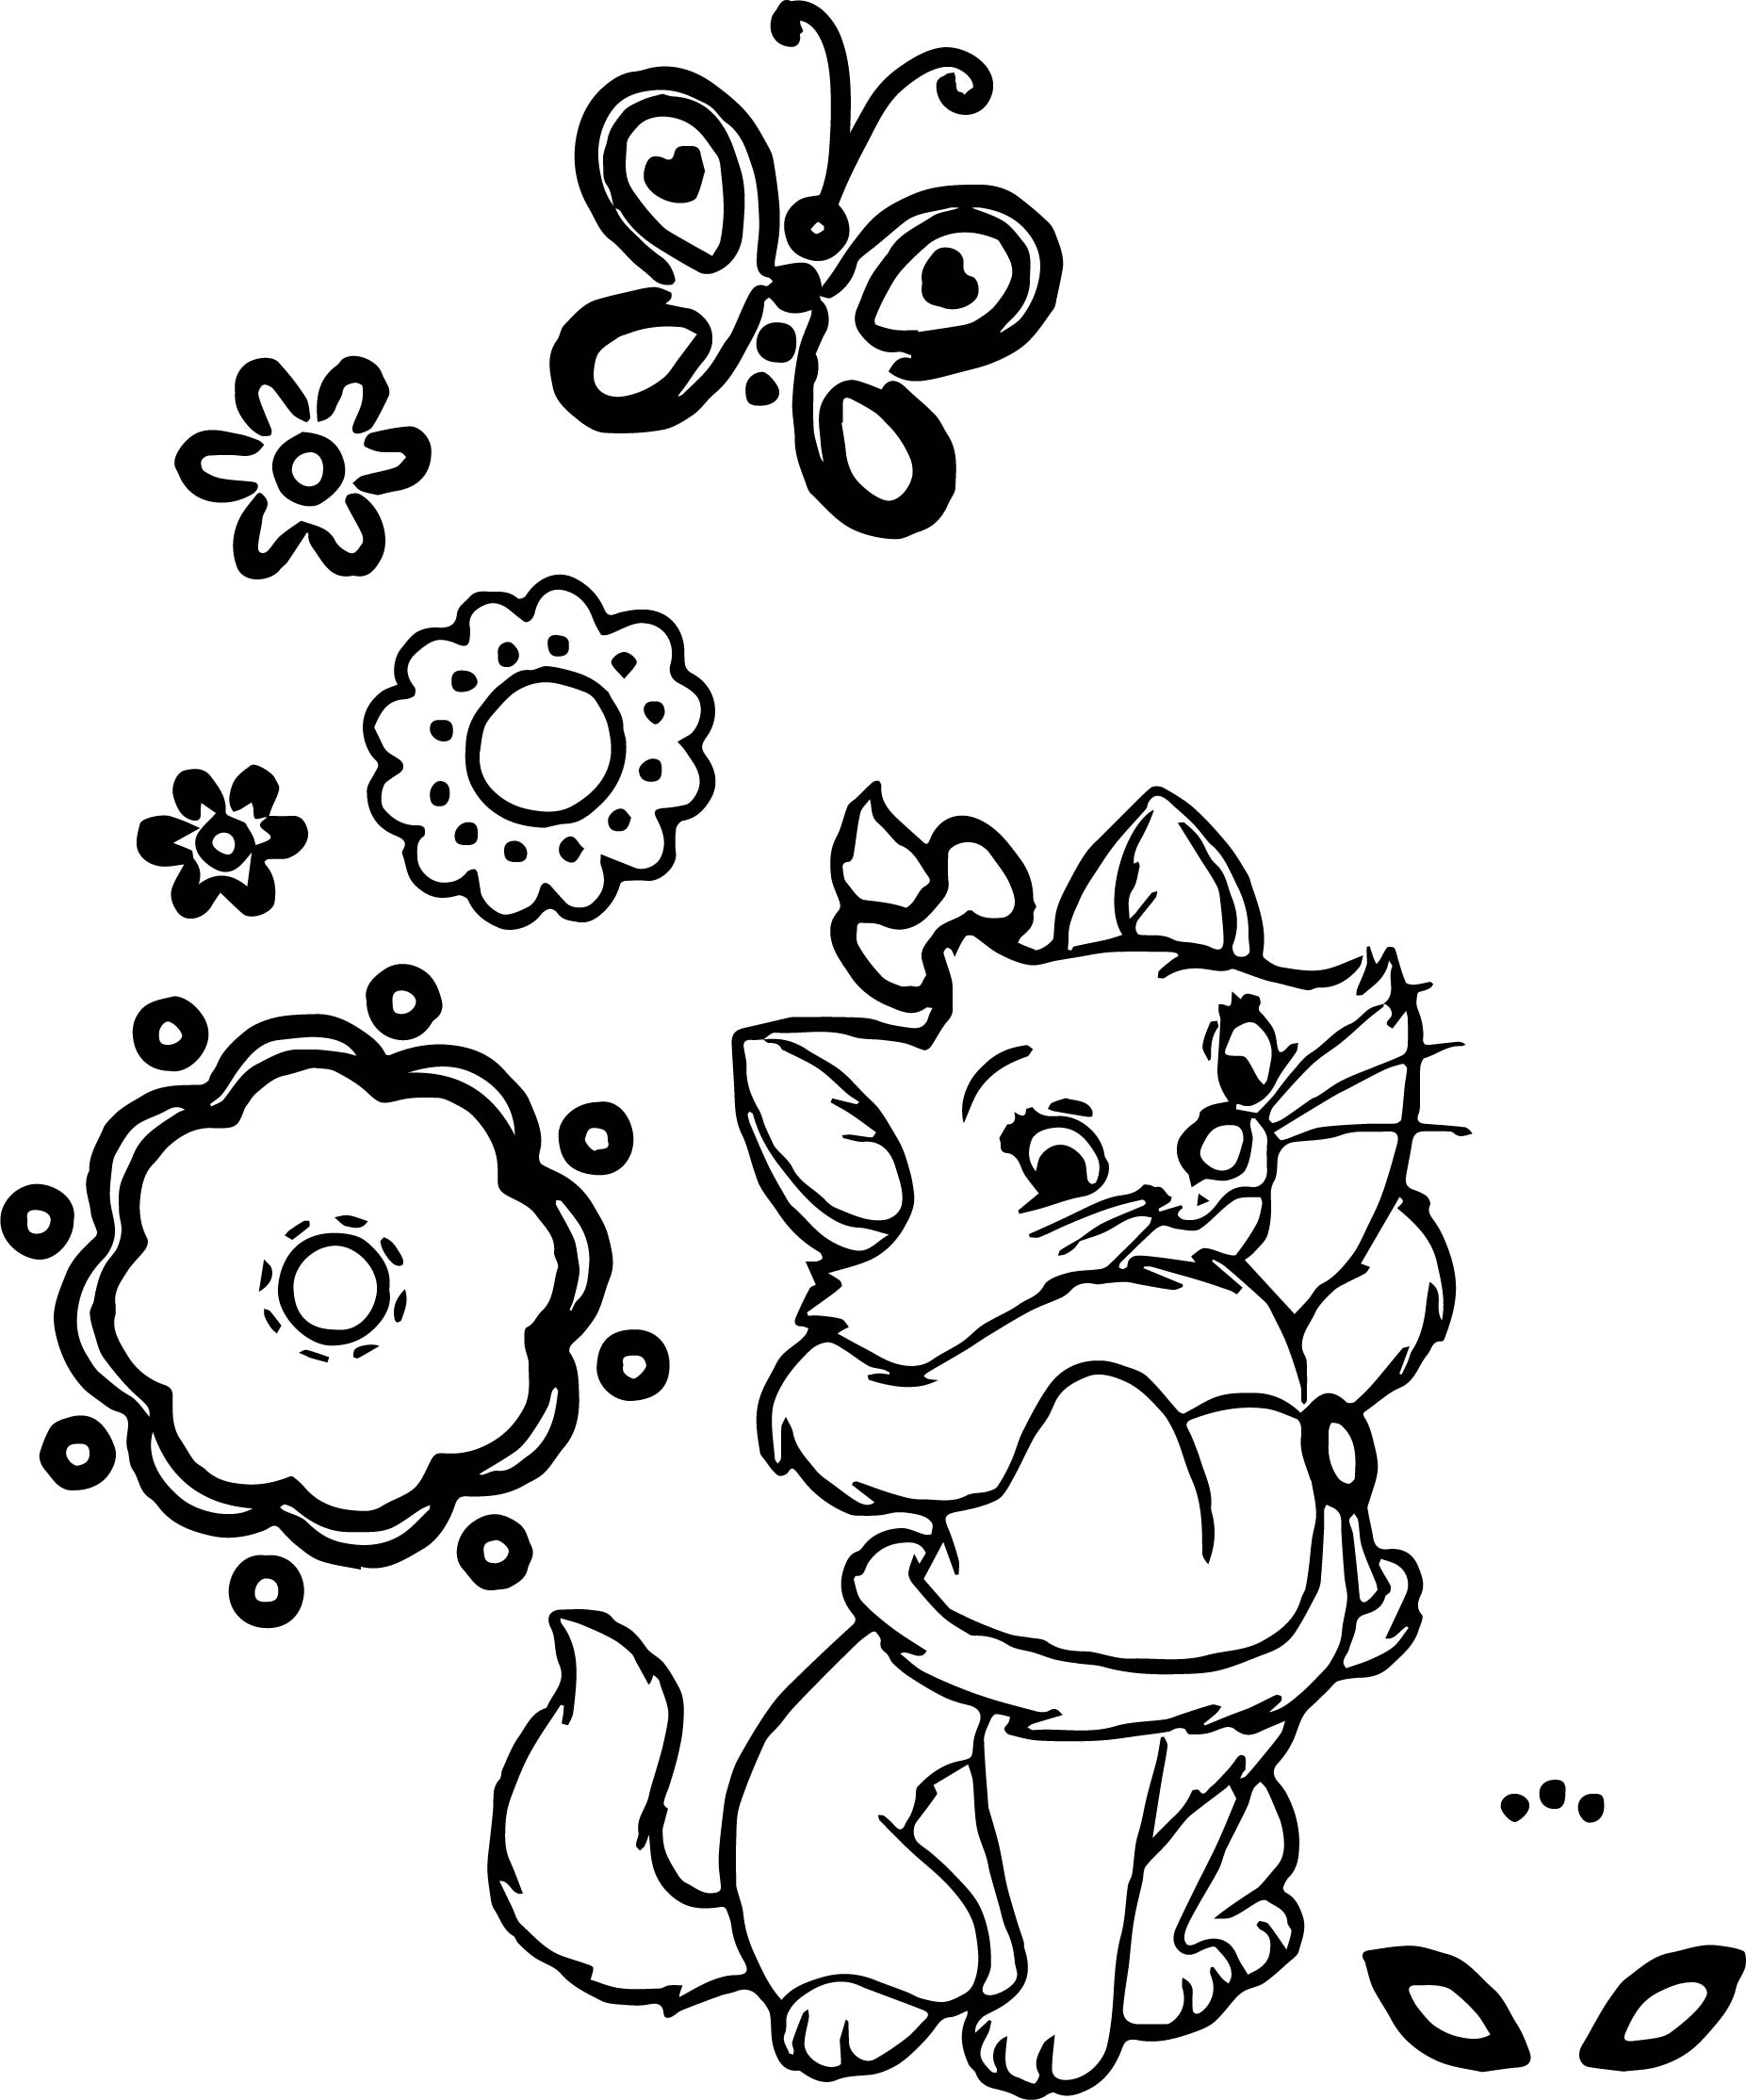 Disney The Aristocats Shape Coloring Page